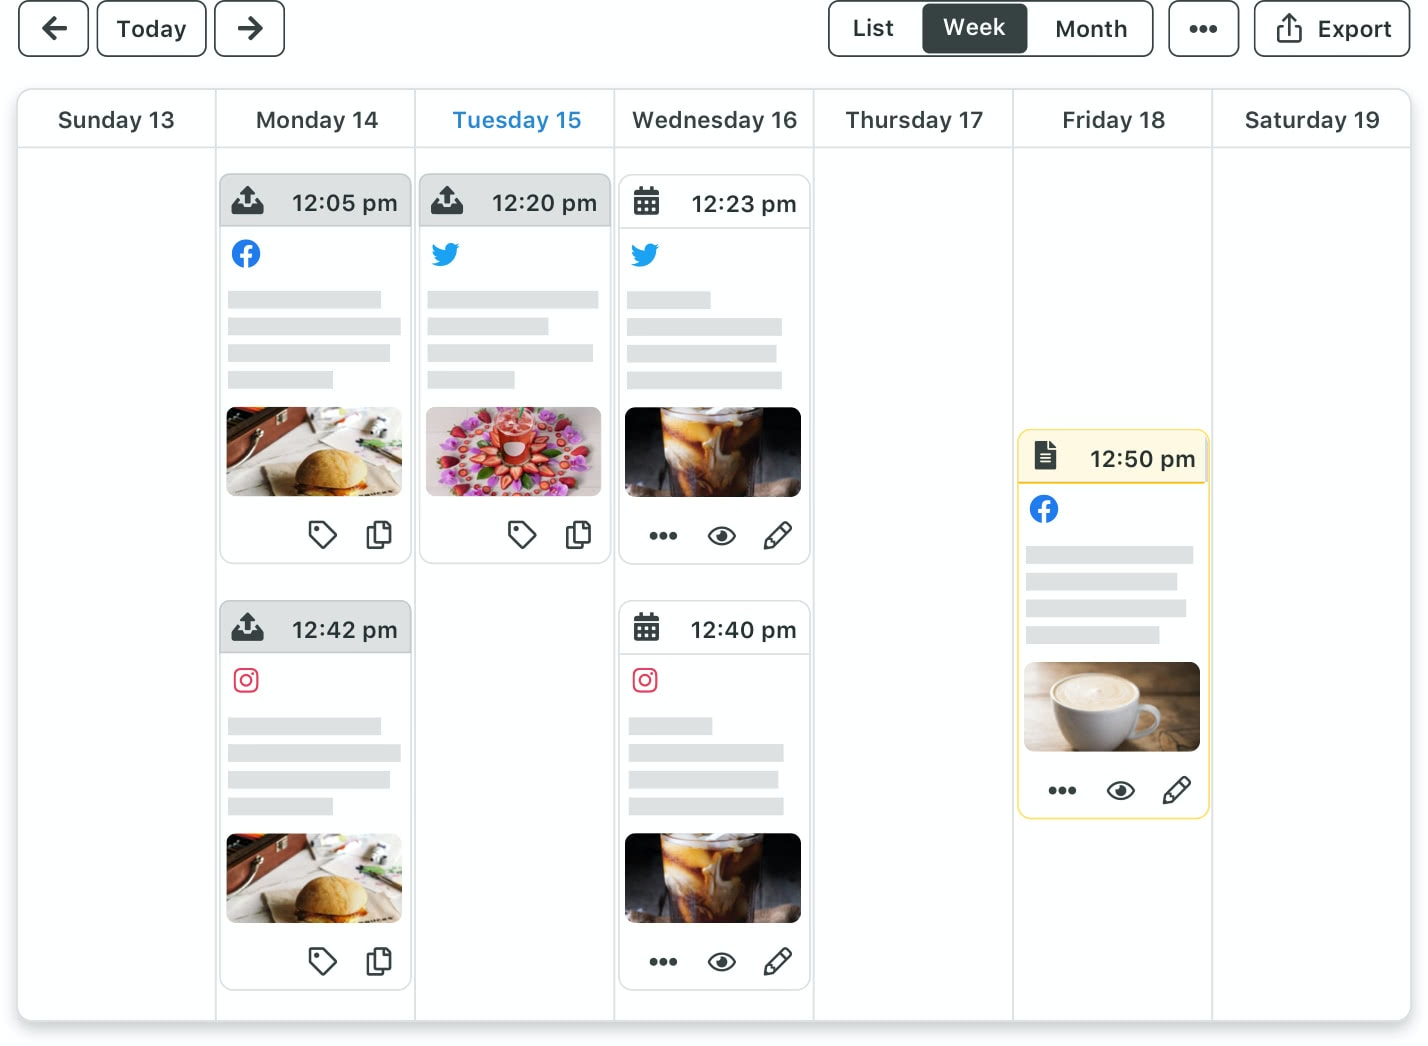 sprout social scheduling and publishing calendar